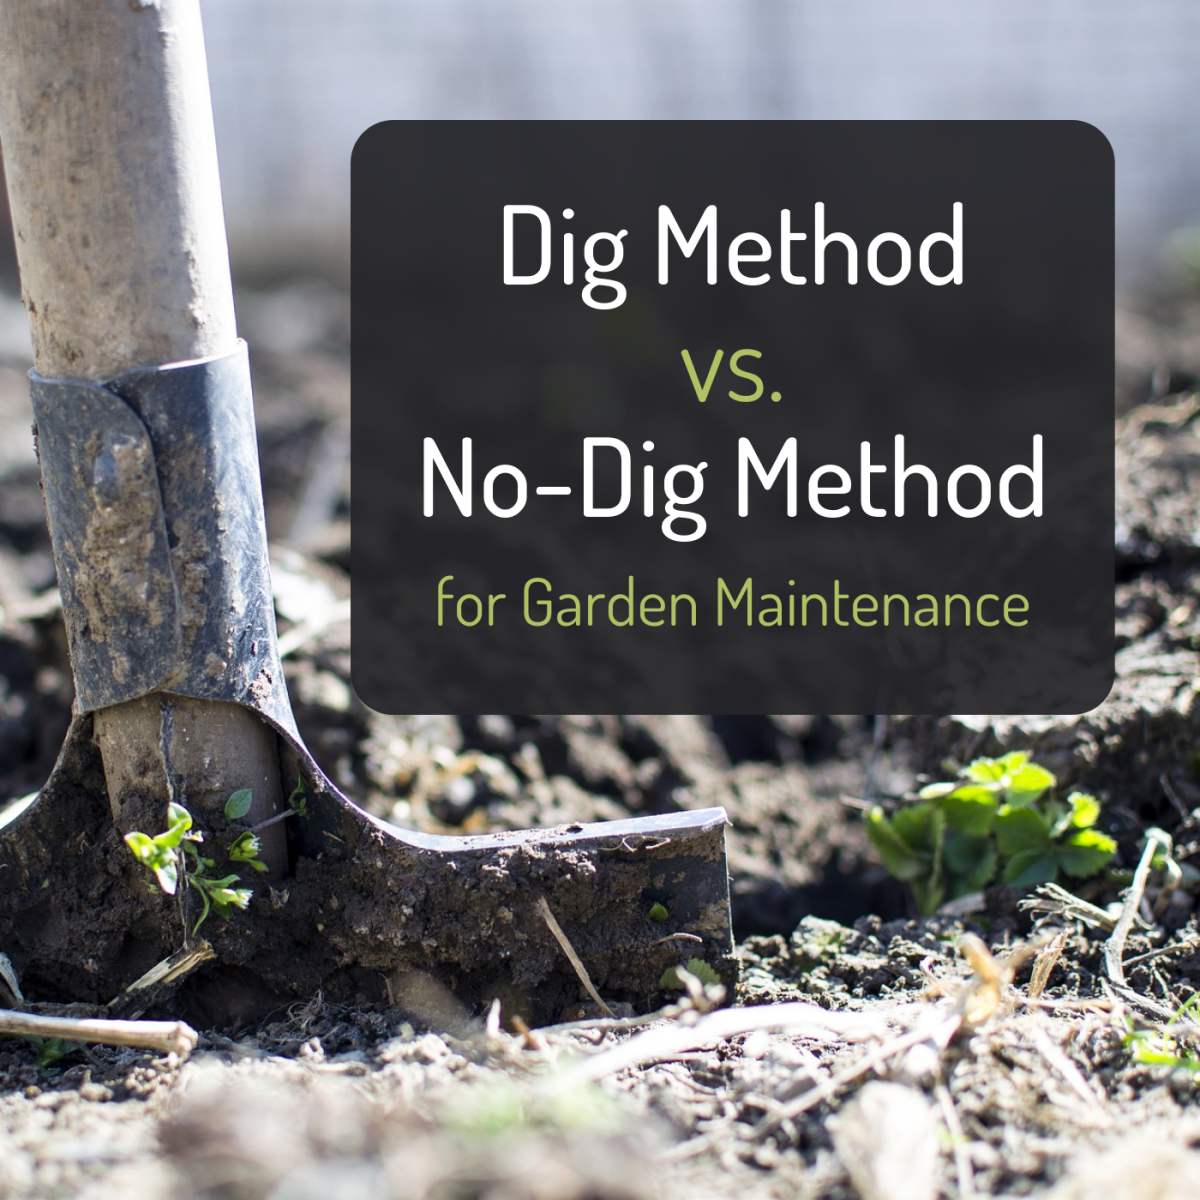 Explore the pros and cons of digging out your garden every year versus using the no-dig method.